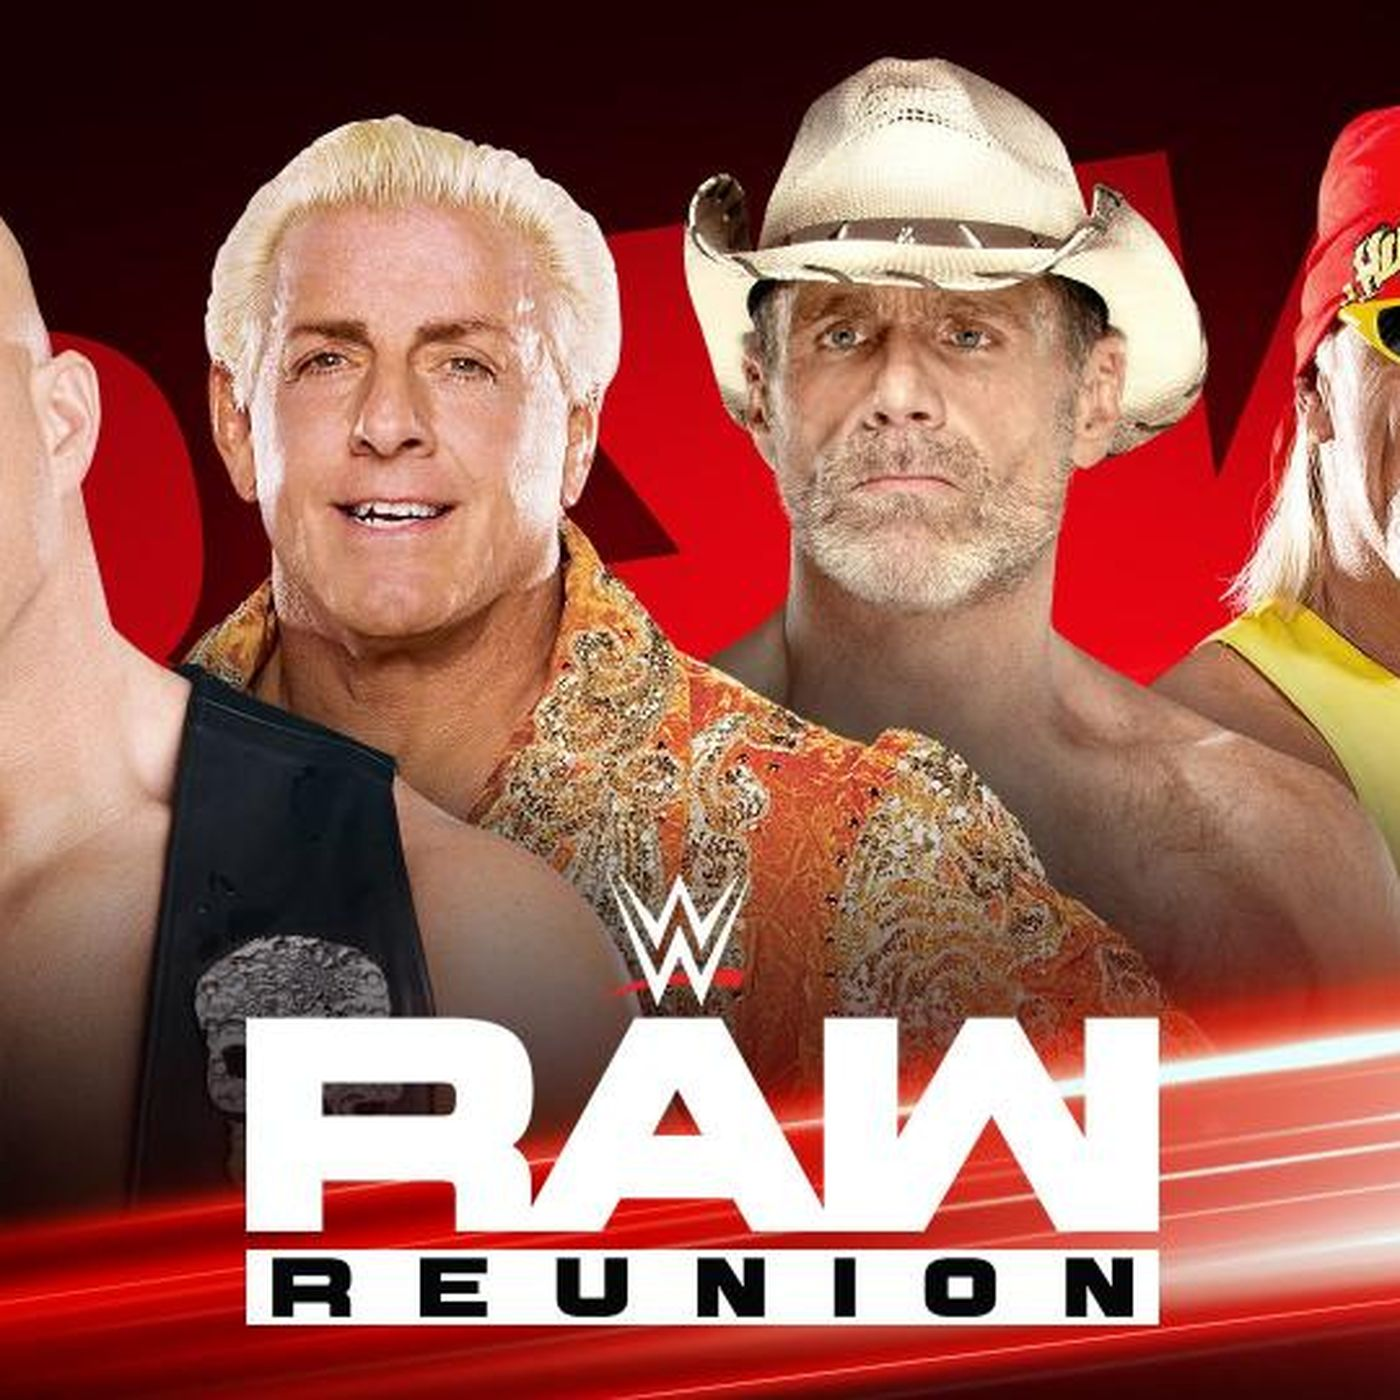 """WWE Smackdown : Complete list of stars attending the 20th anniversary WWE Smackdown will start airing on Fox from 4th October 2019 which is also the 20th anniversary of WWE Smackdown. Many WWE stars of yesteryears are now confirmed to attend the 20th anniversary of WWE Smackdown. The legendary list includes showstoppers like Sting, Hulk Hogan, Lita and the now retired Trish Stratus. This is in a similar pattern to the recently concluded Raw Reunion which saw Stone Cold Steve Austin, Ric Flair, Hulk Hogan, DX, The Kliq, Rikishi among other give another appearance to the fans. WWE Smackdown celebrates its 20th Century on Fox debut The wonderful night of Raw Reunion ended with Stone Cold trademark Beer chugging. Expecting WWE Smackdown debut on Fox to give a similar nostalgic experience. Many new age and former superstars have grown on WWE Smackdown. John Cena, Rey Mysterio, Brock Lesnar, The Undertaker are some of the names that defined the WWE Smackdown in the last 2 decades. WWE has confirmed the attendance of many such wrestlers. The illustrious list includes Hulk Hogan, Kurt Angle, Lita, Ric Flair , Goldberg etc. Smackdown starts another chapter with Fox It's such an exciting fans for the WWE fans and industry. The iconic WWE Smackdown has completed two decades and now another chapter begins with Fox collab. WWE also hinted they could bring back the Fist as a throwback to the attitude-era. Talking about SmackDown's movie to FOX, Vince McMahon shared, """"SmackDown has been delivering action-packed, family-friendly programming for two decades, and we look forward to entertaining generations to come as we begin this next chapter on FOX."""" New age superstars like Roman Reigns, Kofi Kingston and Randy Orton will also entertain the viewers on the occasion. Especially when rivalries have borne out of the recently concluded SummerSlam."""